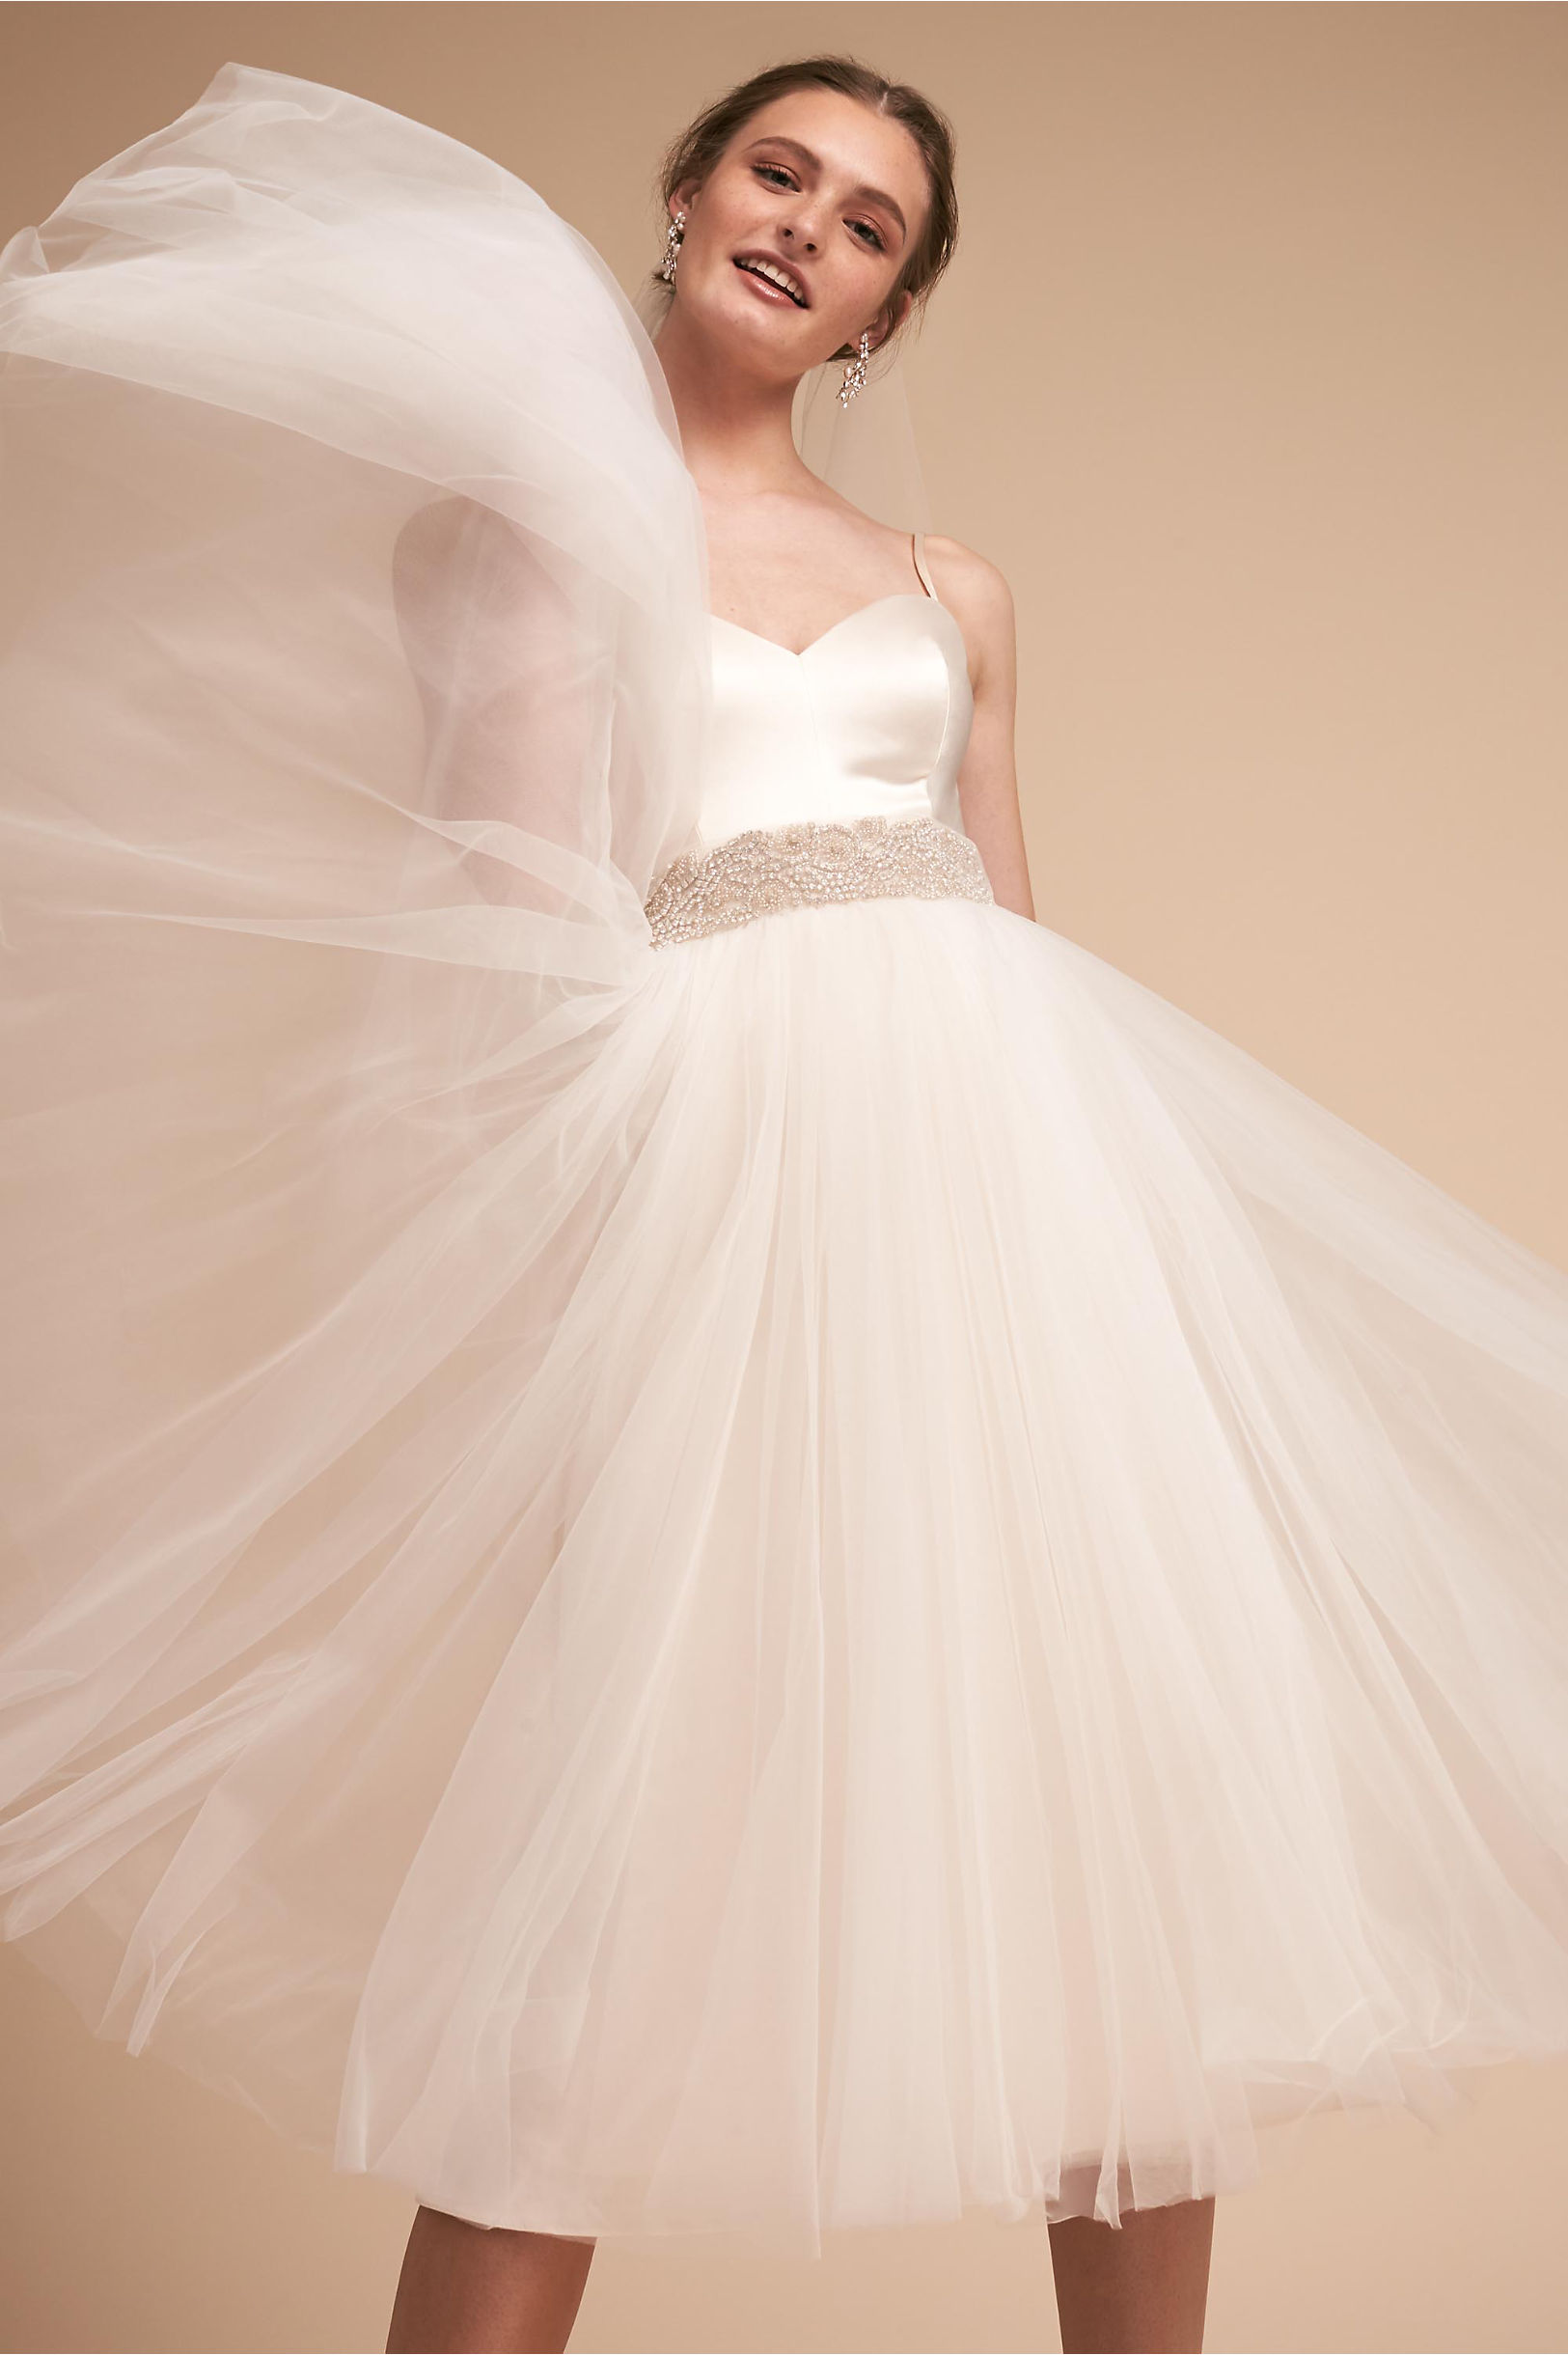 Camilla short cocktail wedding dress sweetheart neckline thin straps catherine deane bhldn spring 2018